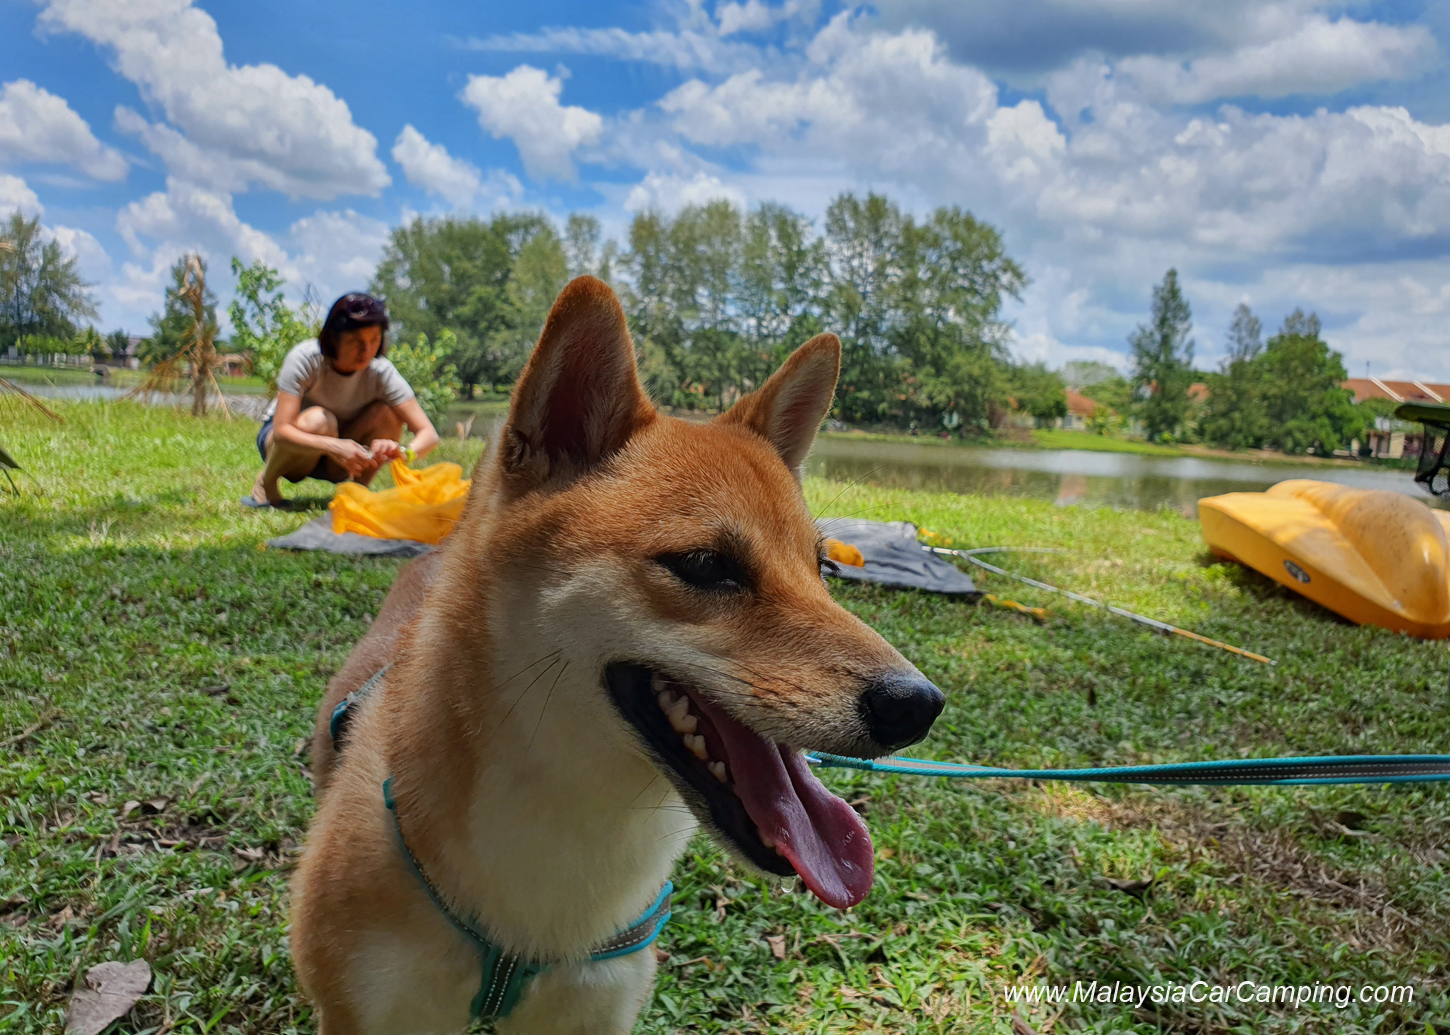 camping_with_dogs_puppy_lakeside_camping_malaysia_car_camping_malaysia_campsite-4